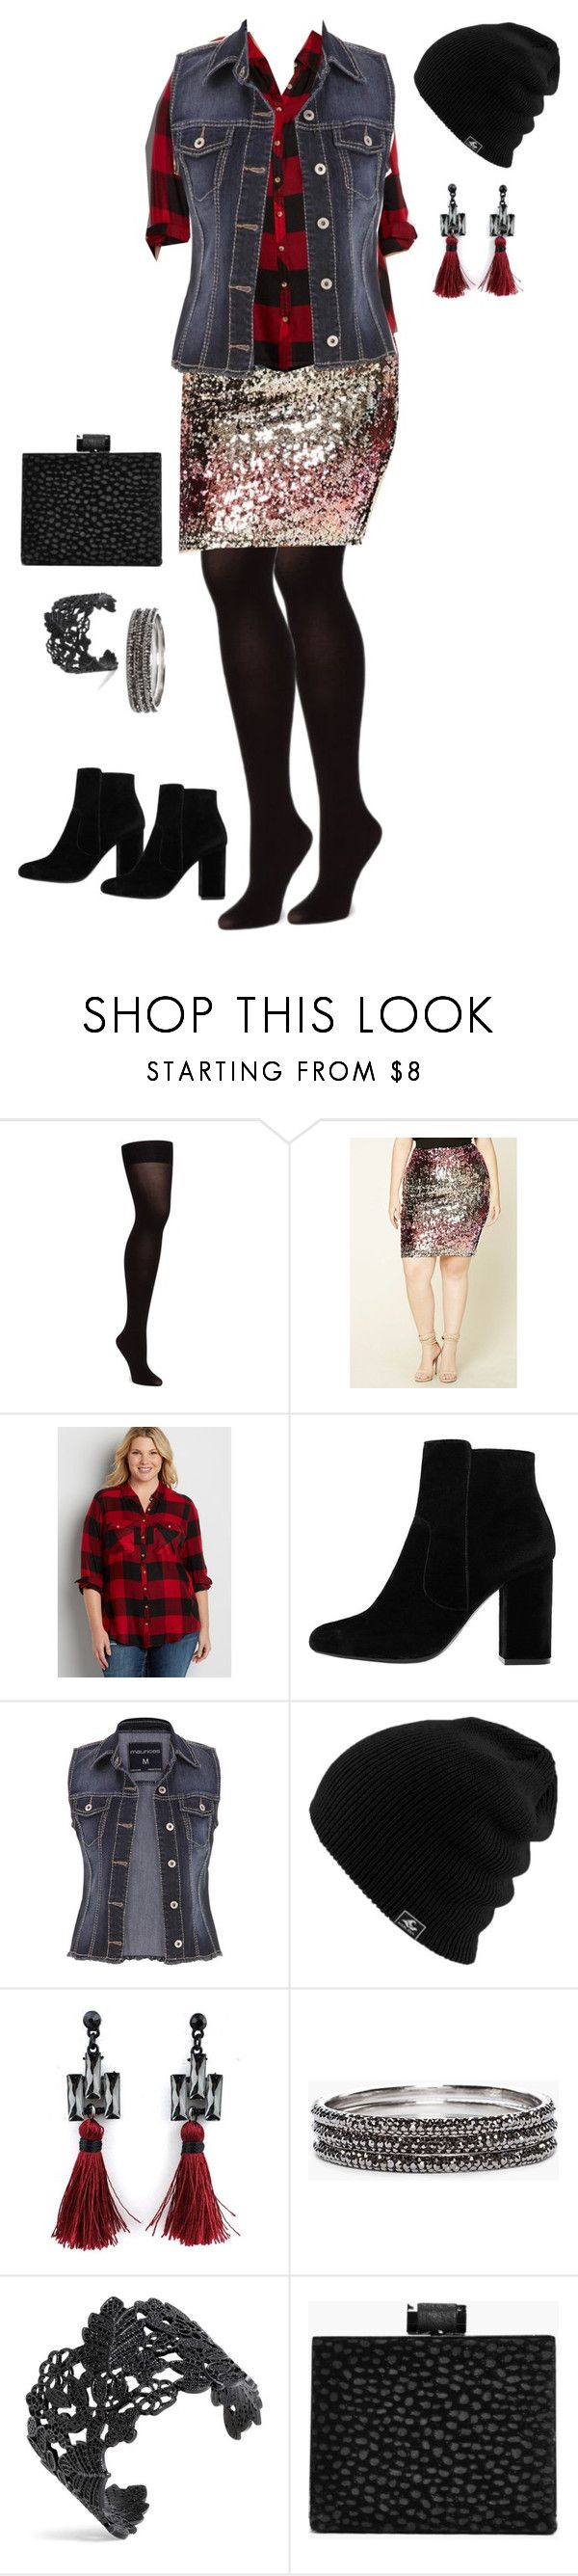 """Punky Glam - Plus Size"" by pamelaflores-1 ❤ liked on Polyvore featuring maurices, MANGO, Chico's and Boohoo"